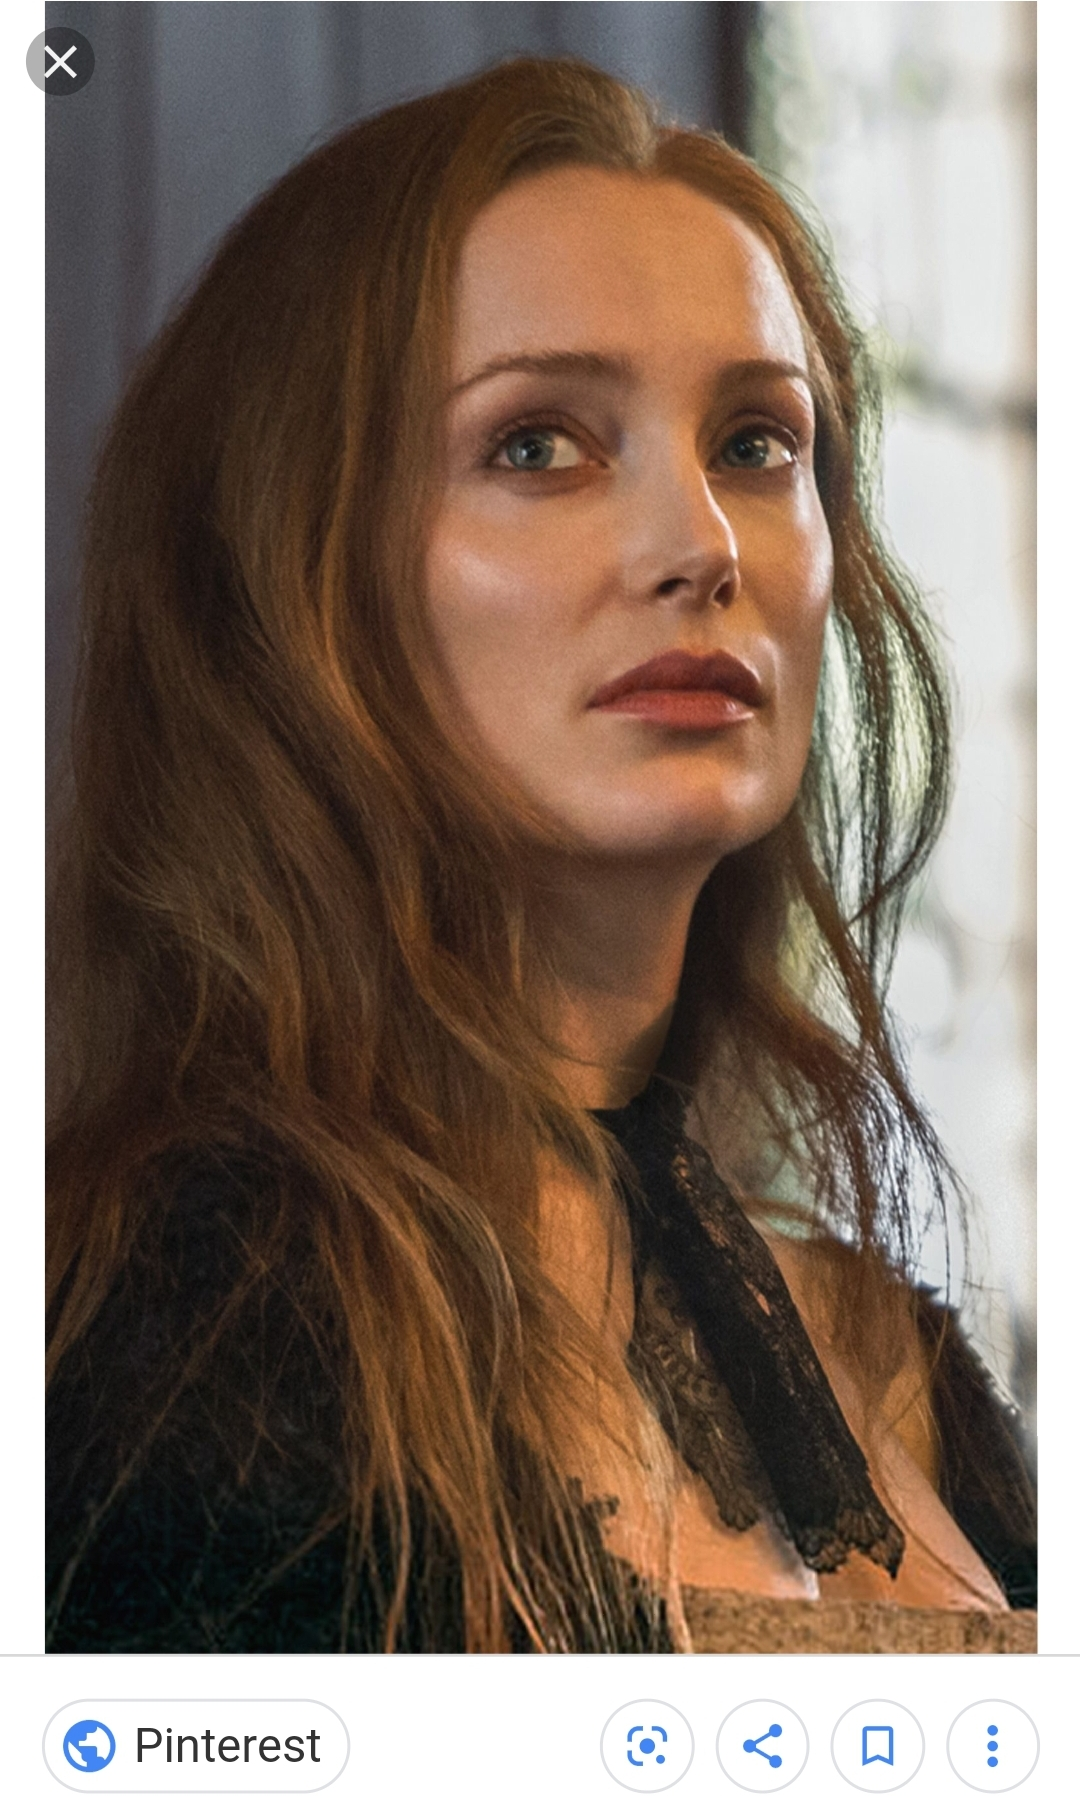 Portrayed by Lotte Verbeek, this photo is a screencap from the Starz show Outlander, courtesy of Pinterest